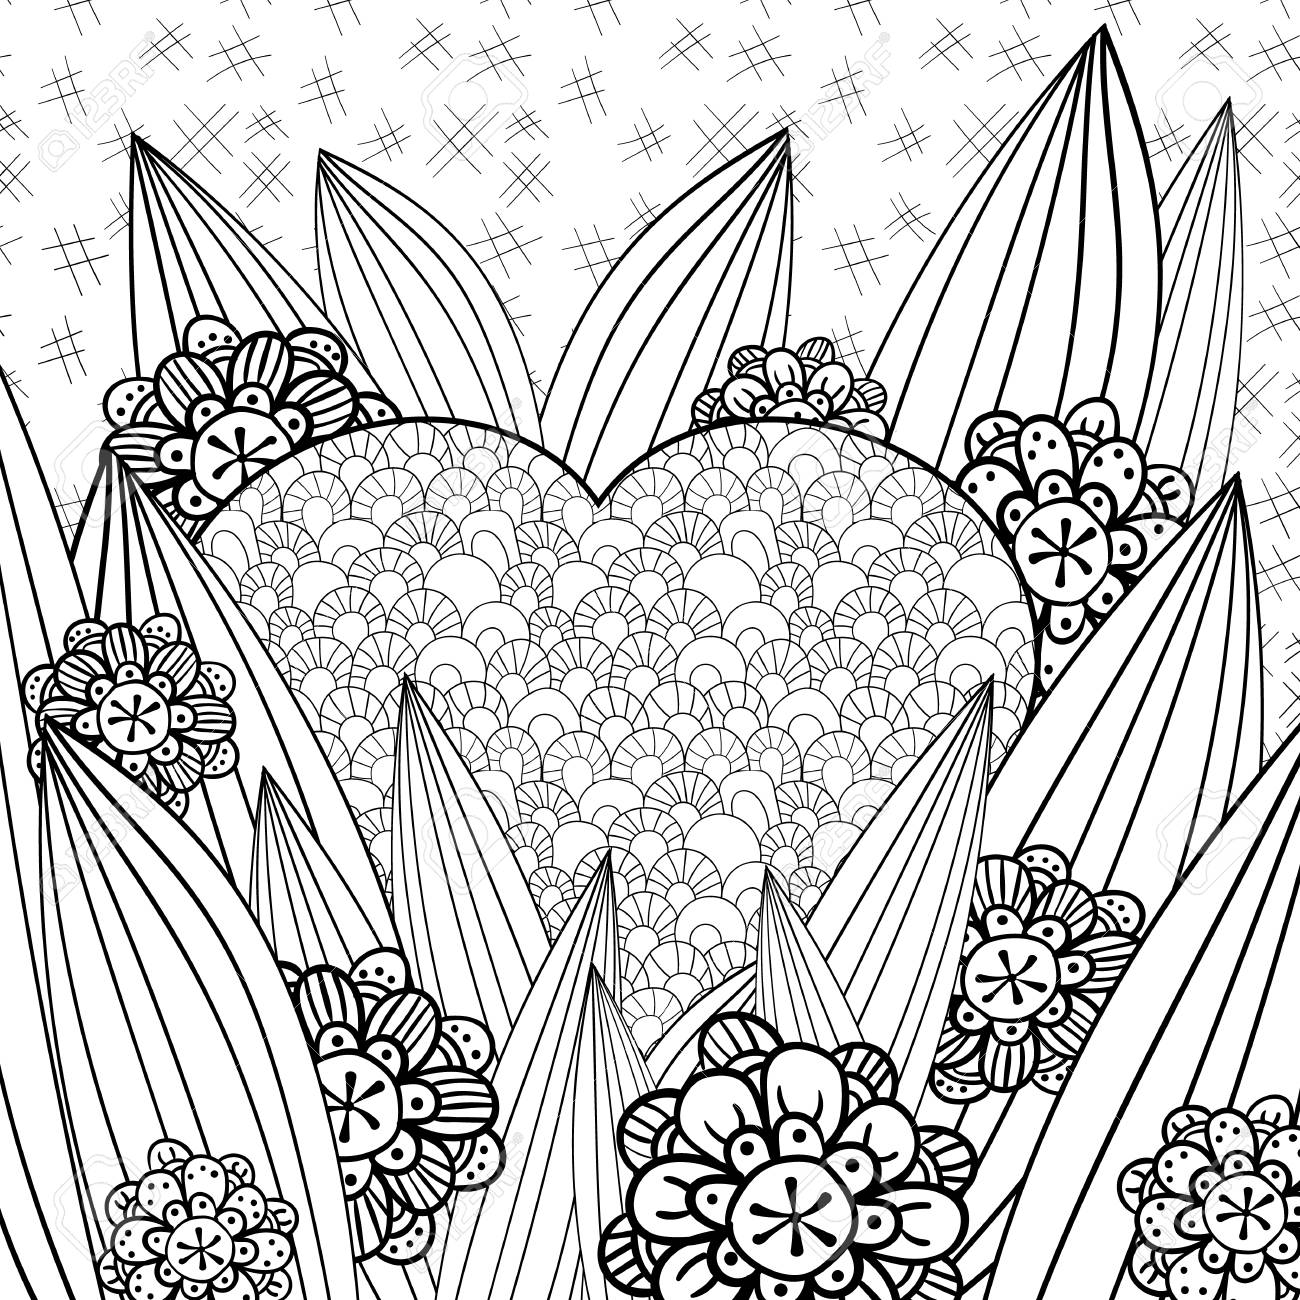 Whimsical Garden Adult Coloring Page Hand Drawn Vector Illustration